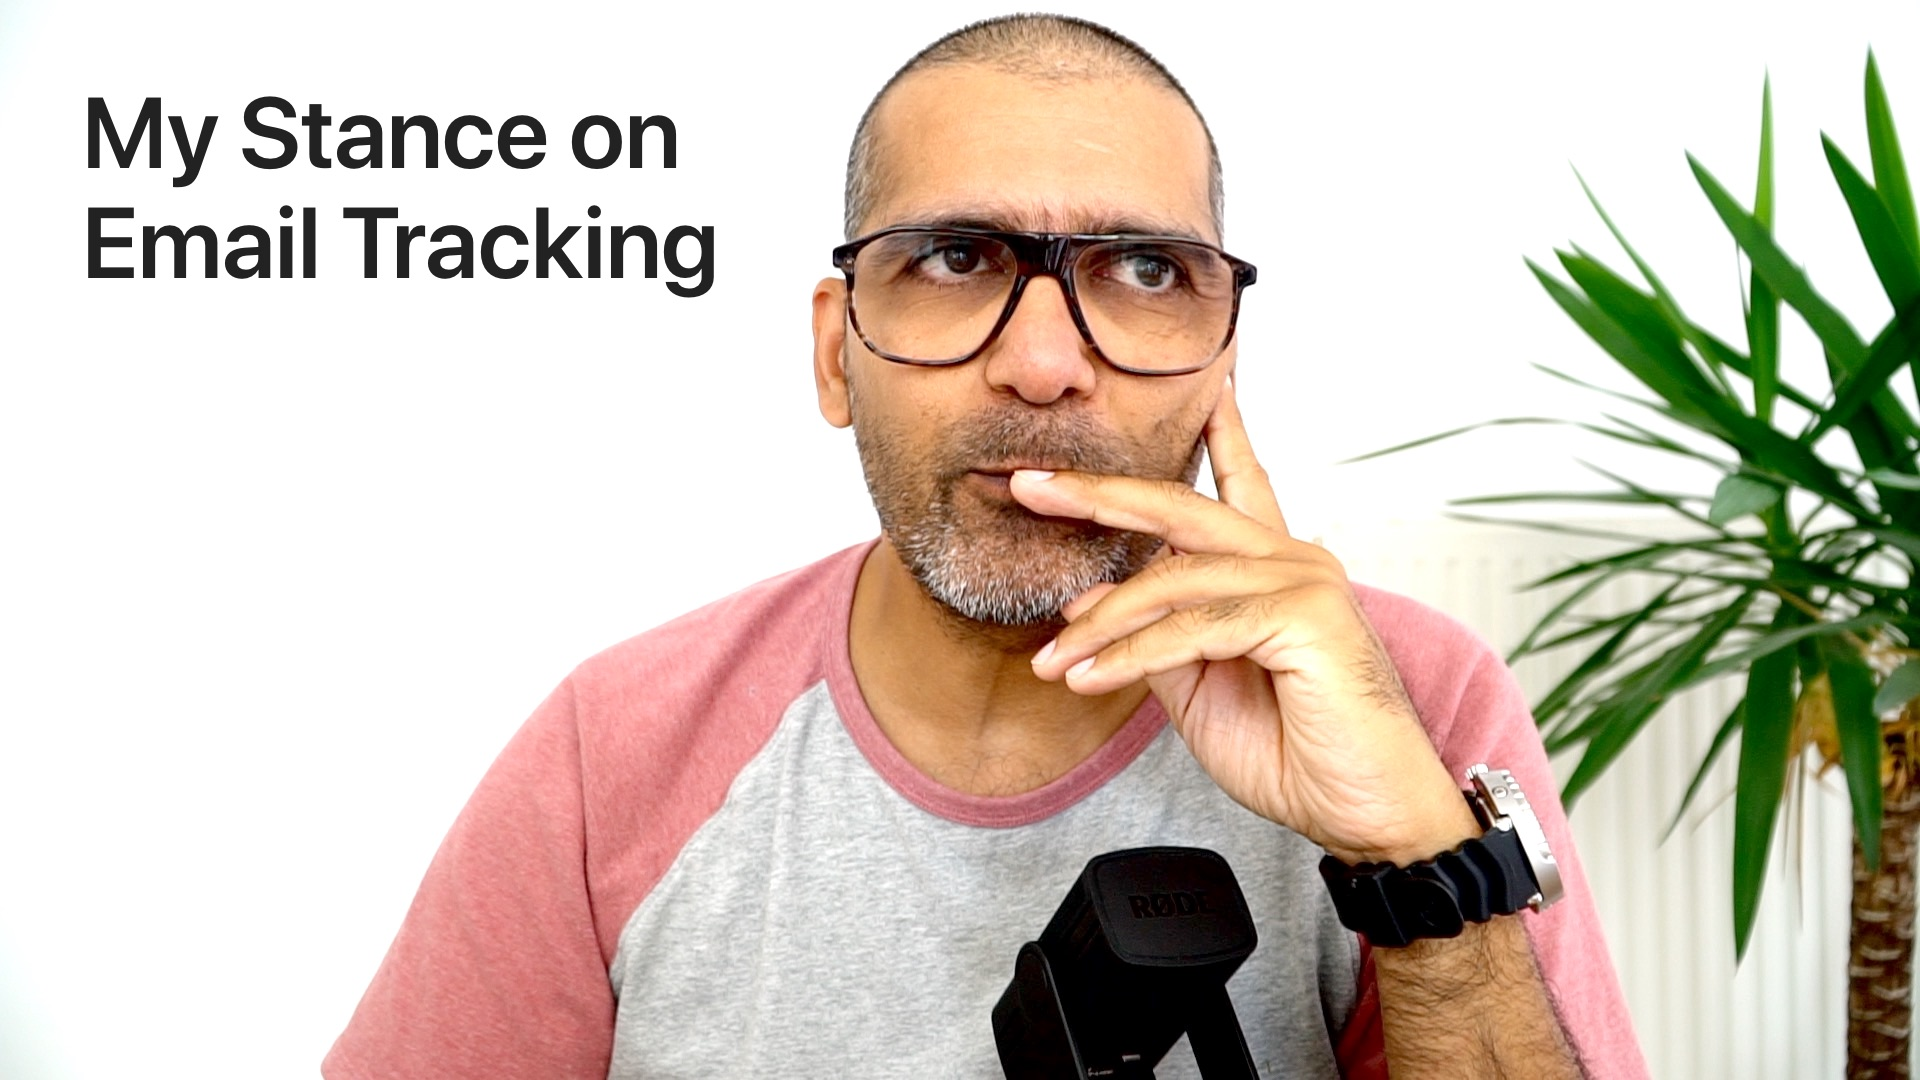 Where I stand on email tracking and security